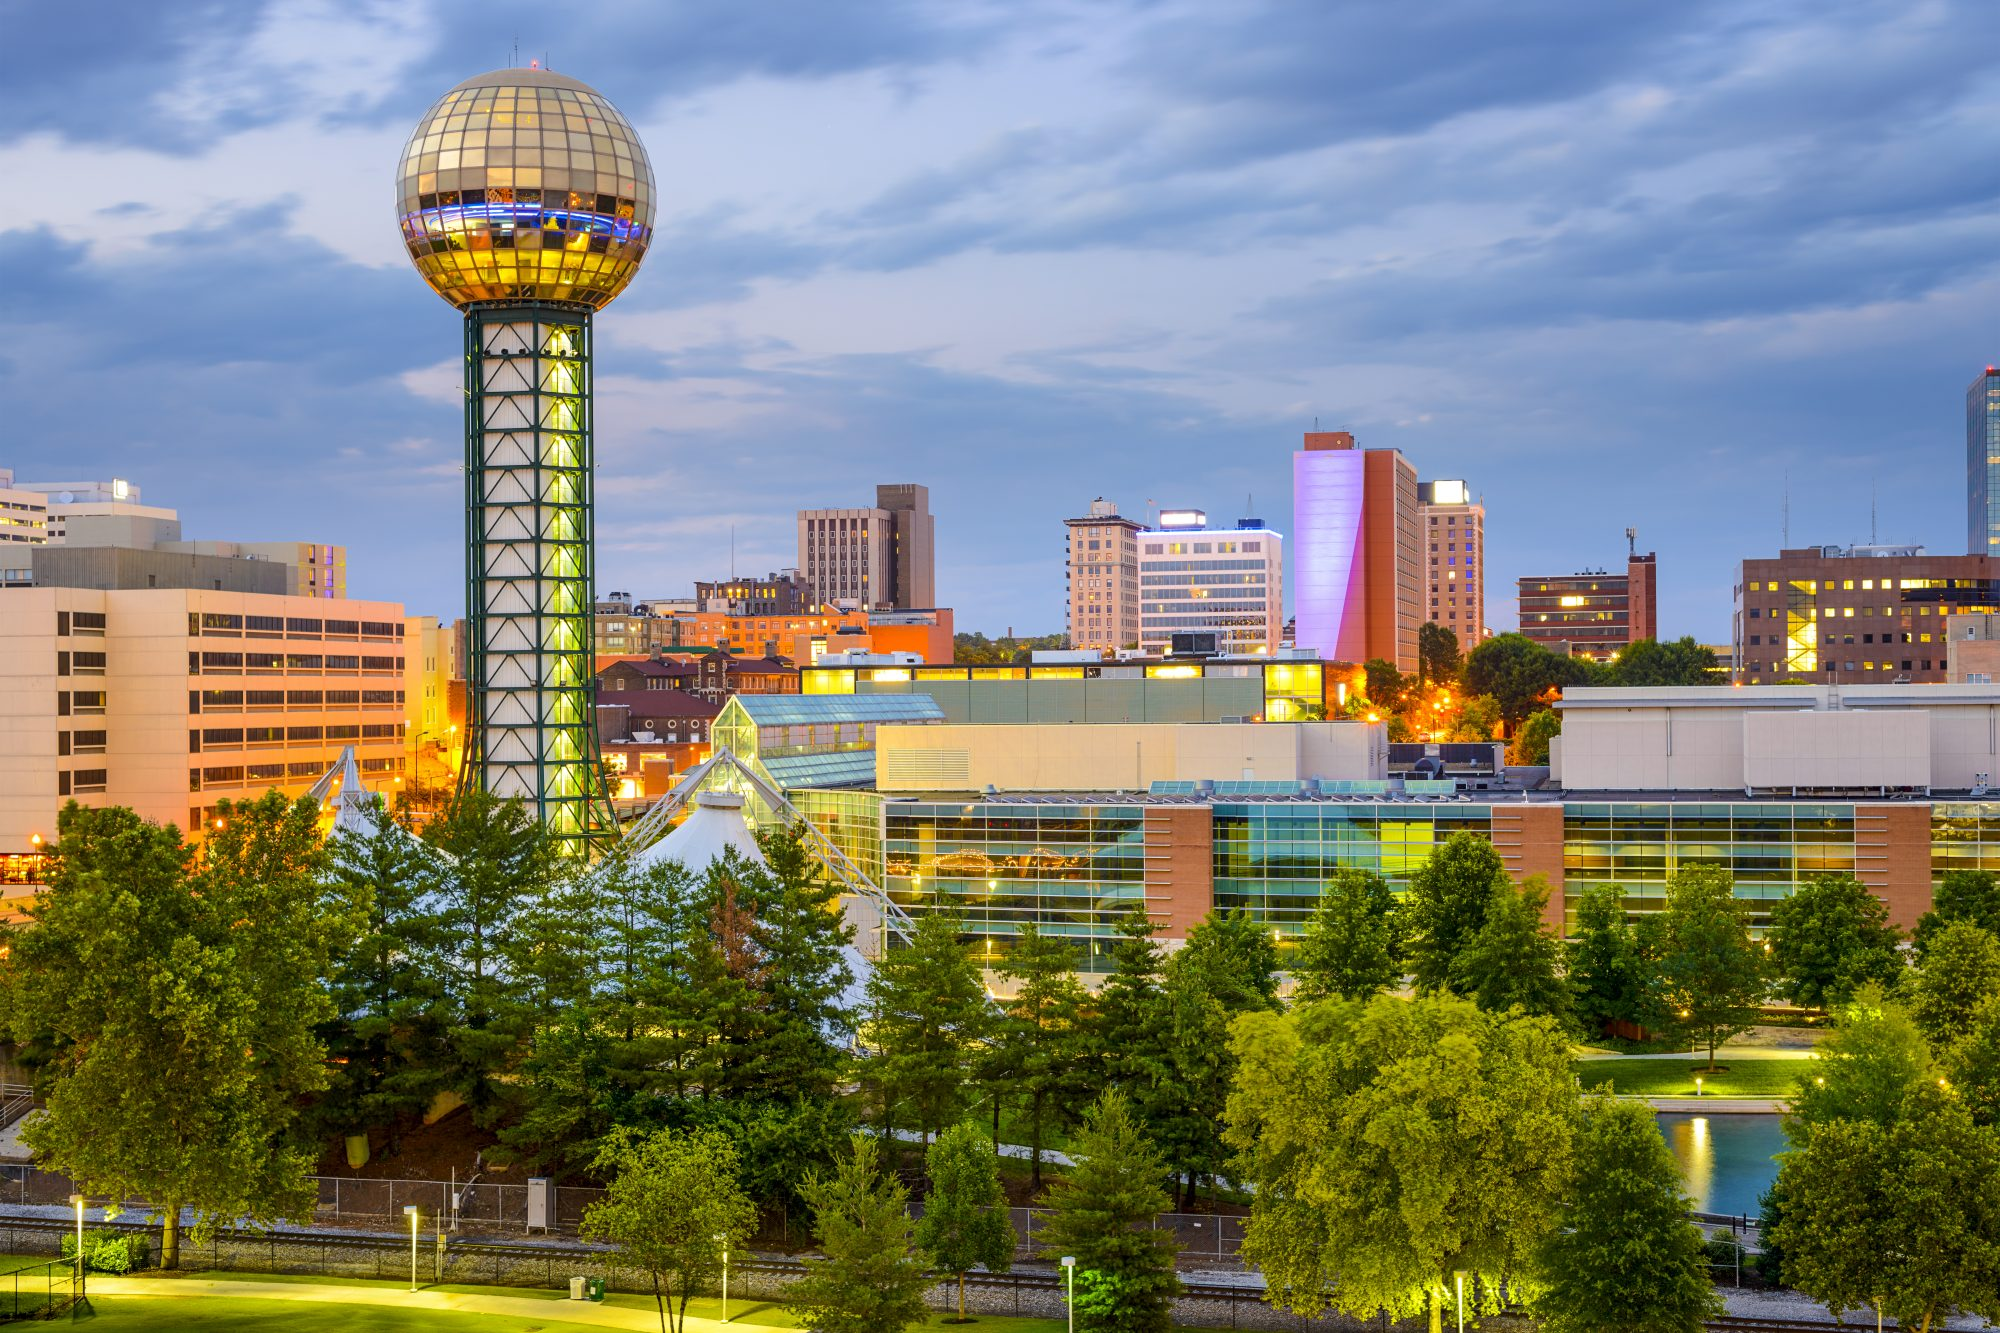 10. Knoxville, Tennessee